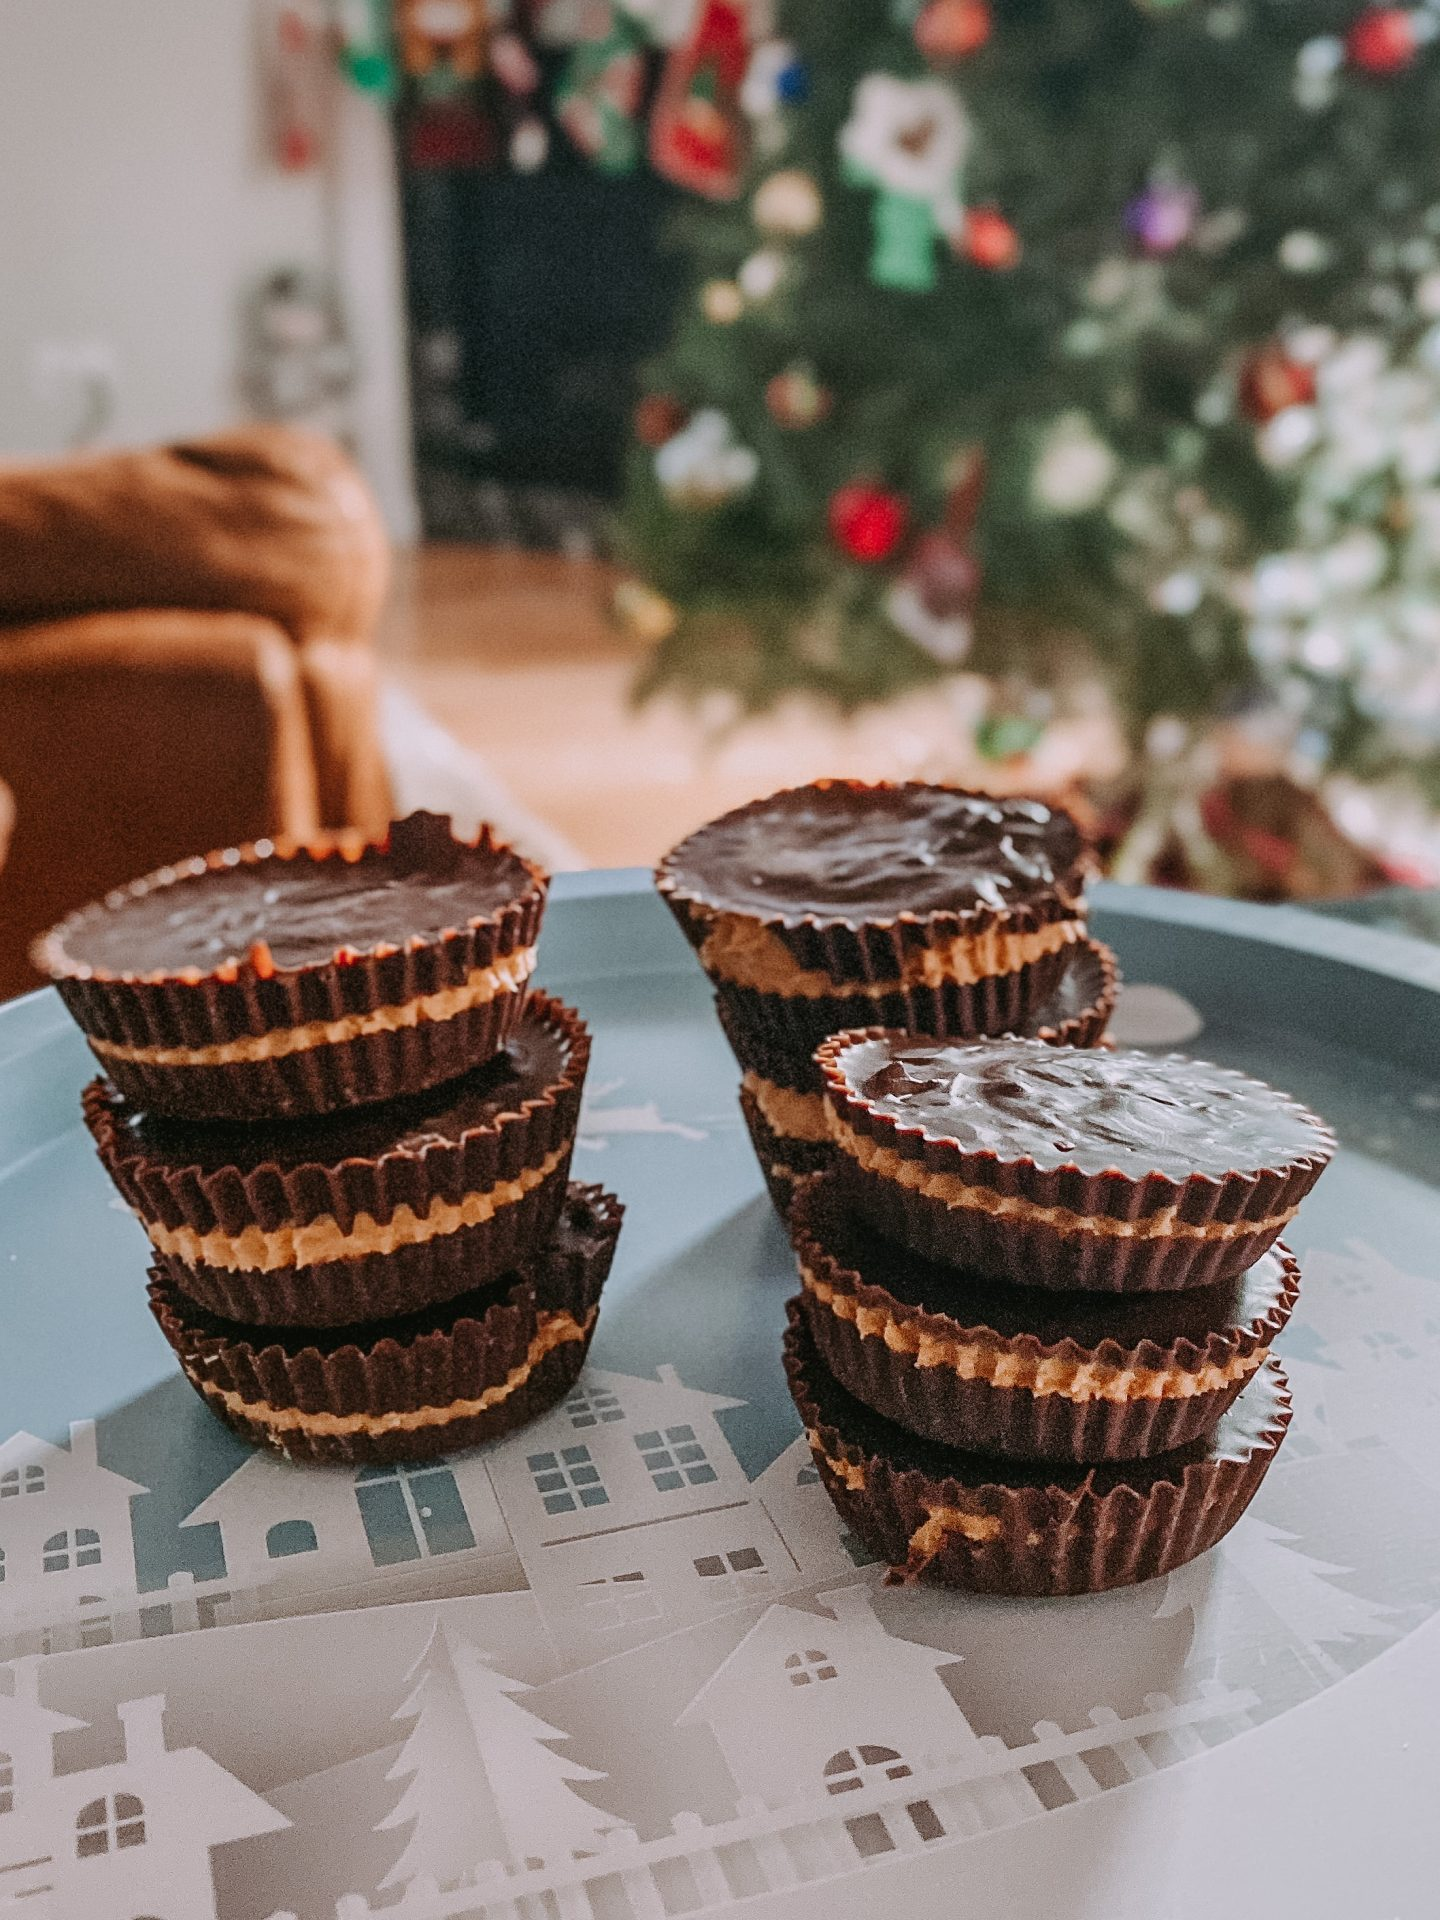 No Bake Holiday Peanut Butter Cups